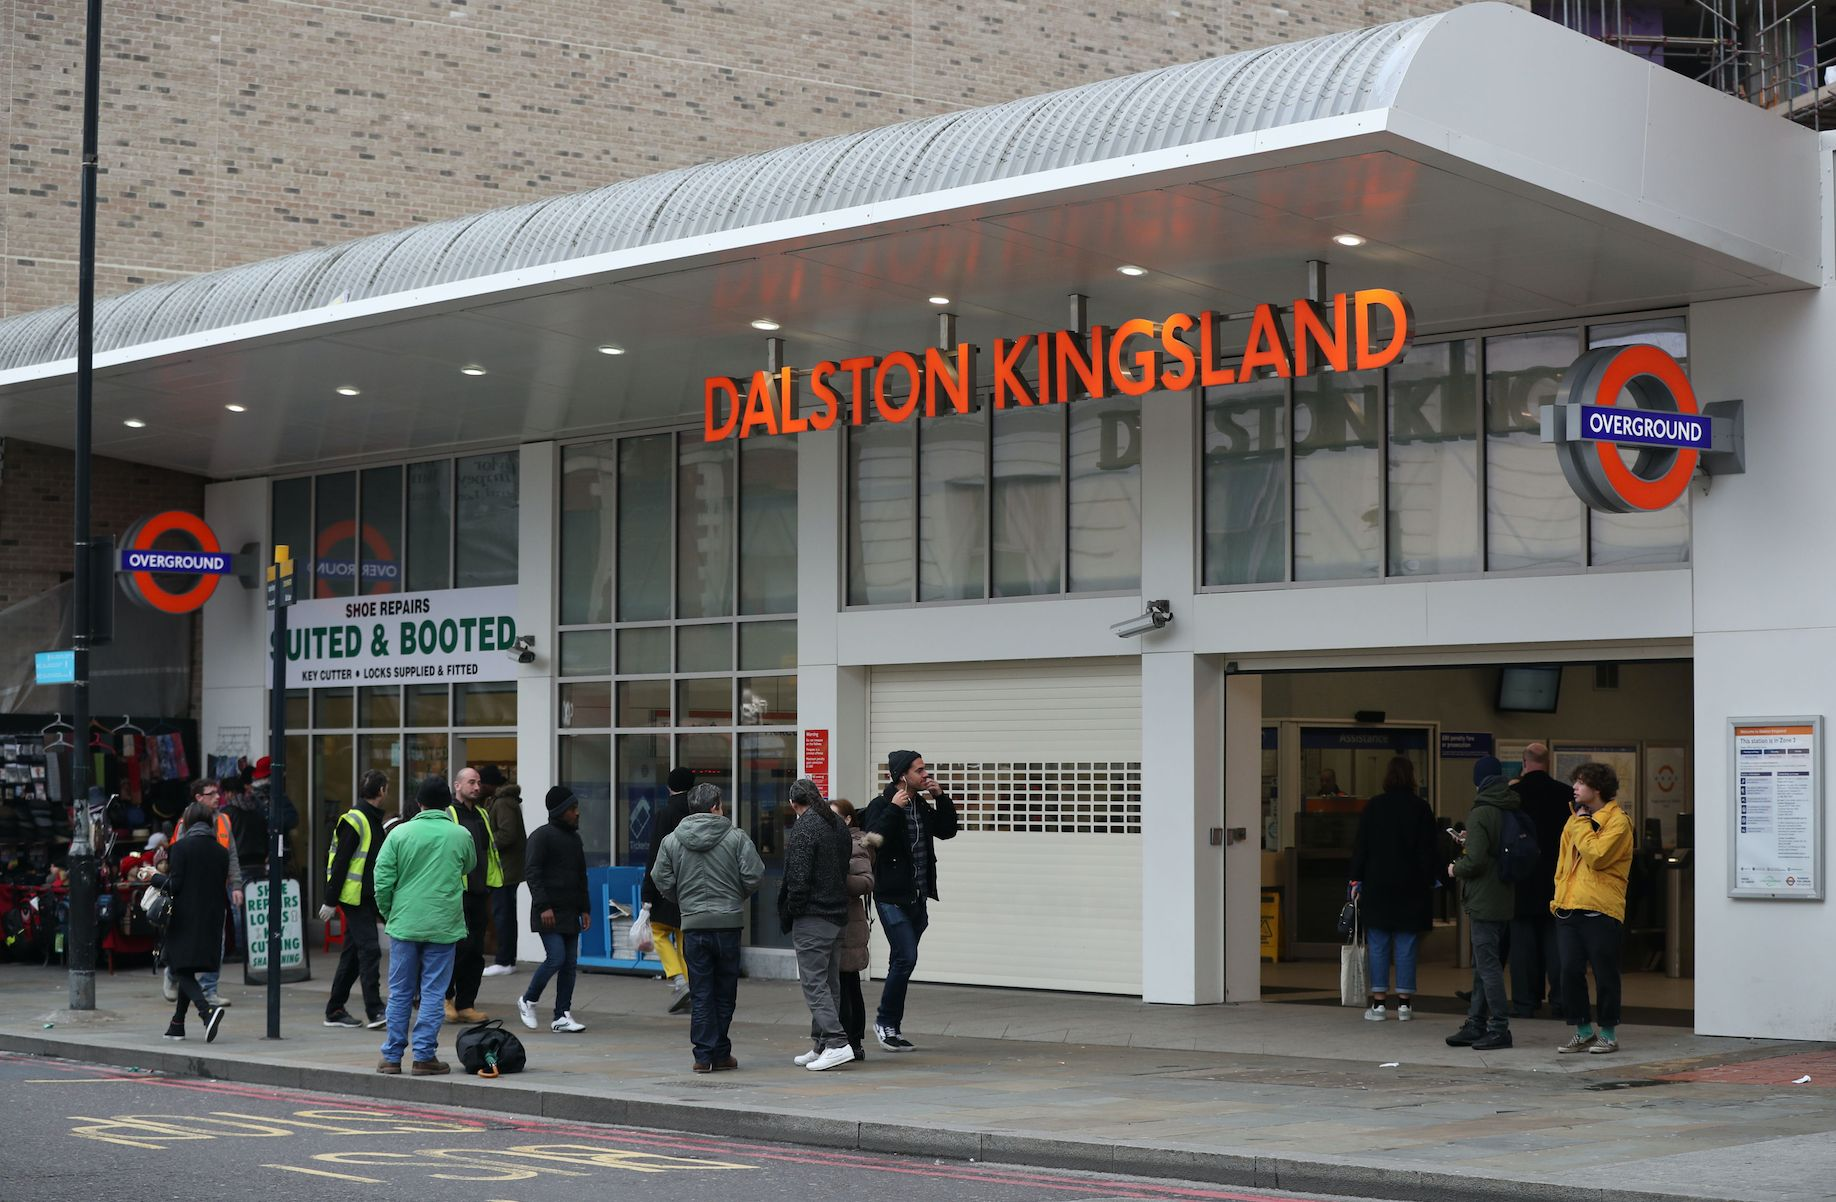 A man armed with a meat clever alleged stabbed another man in the head in Dalston, east